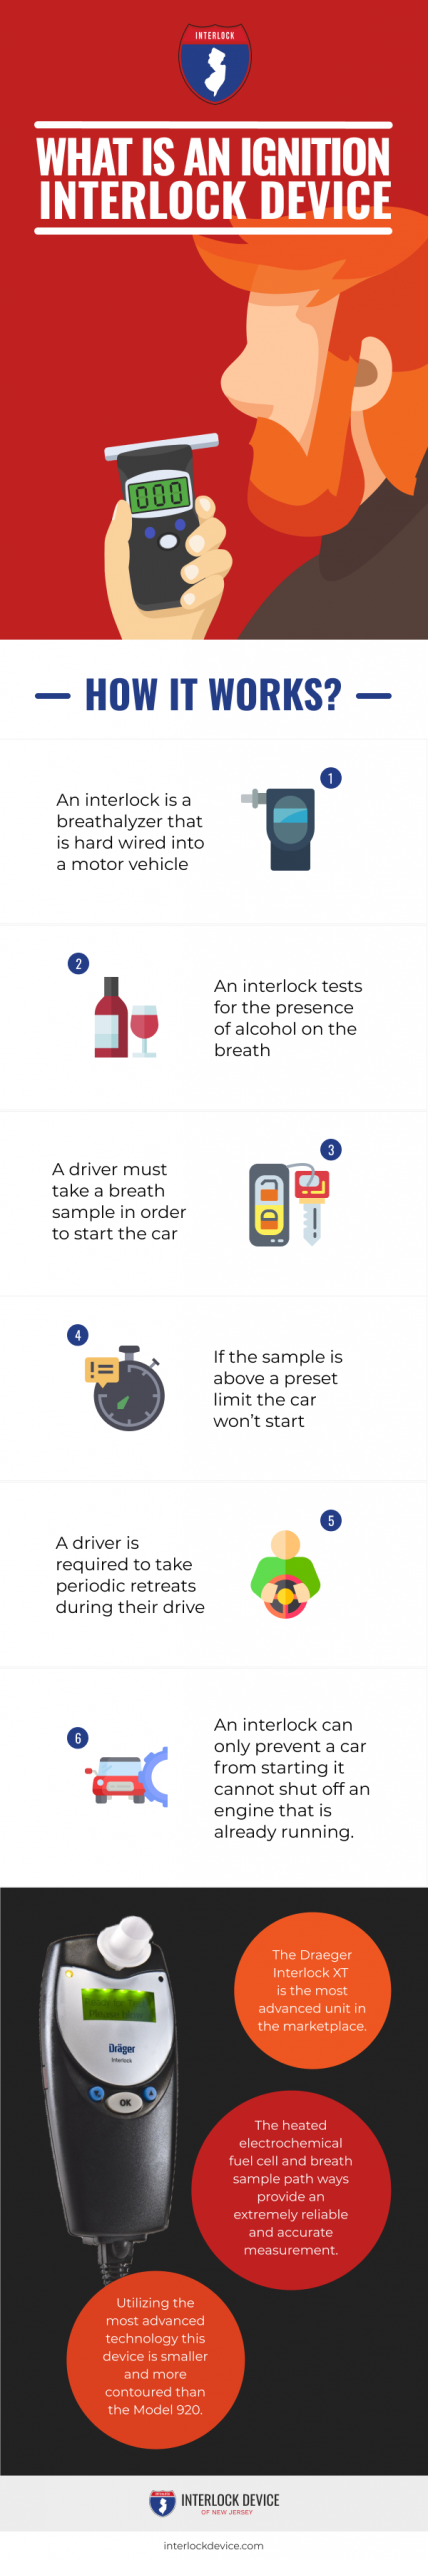 What Is An Ignition Interlock Device  How Does It Work